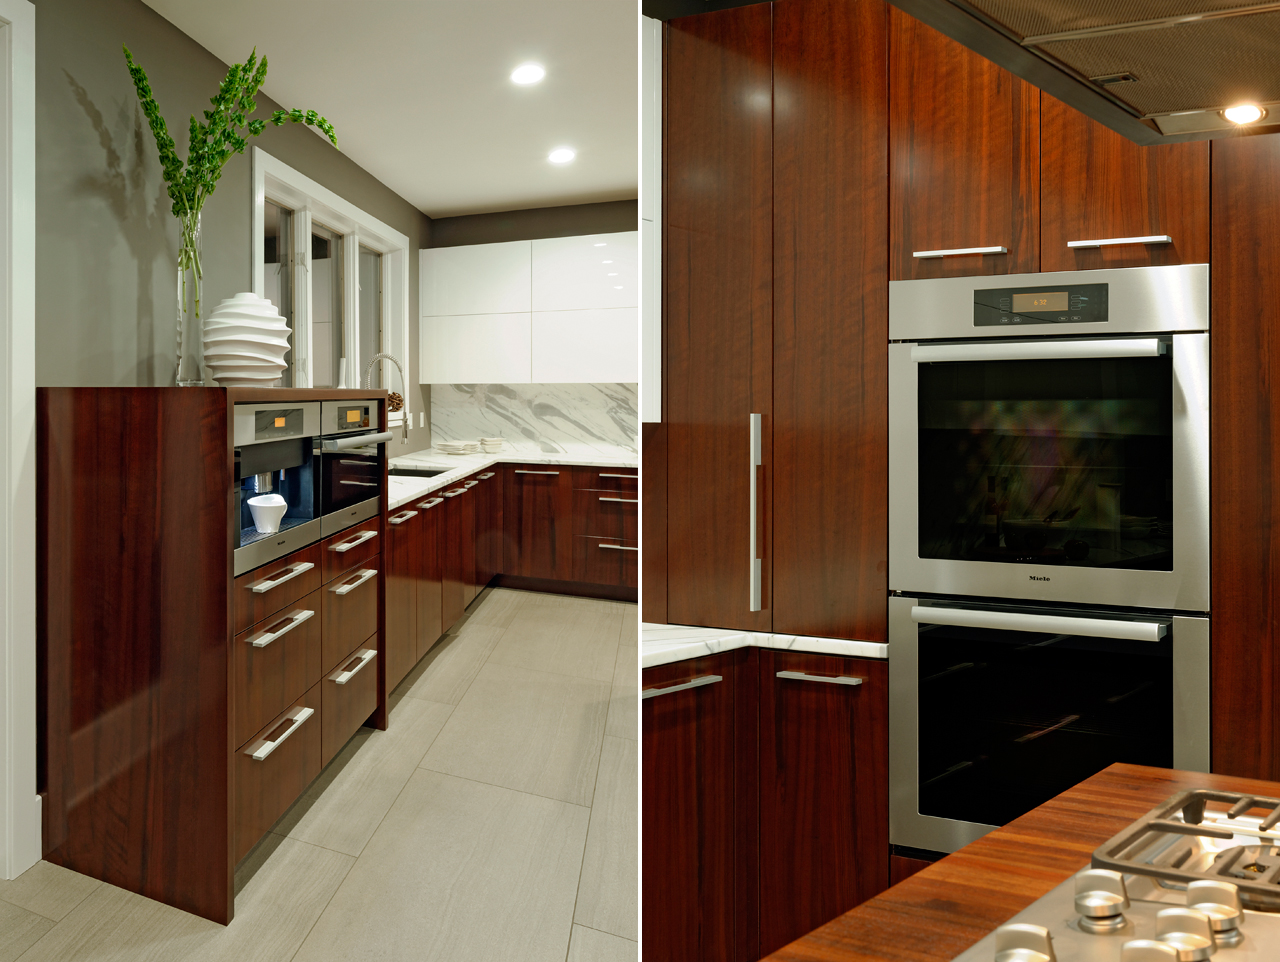 Before & After: A Basic Kitchen Gets a Warm Modern ...